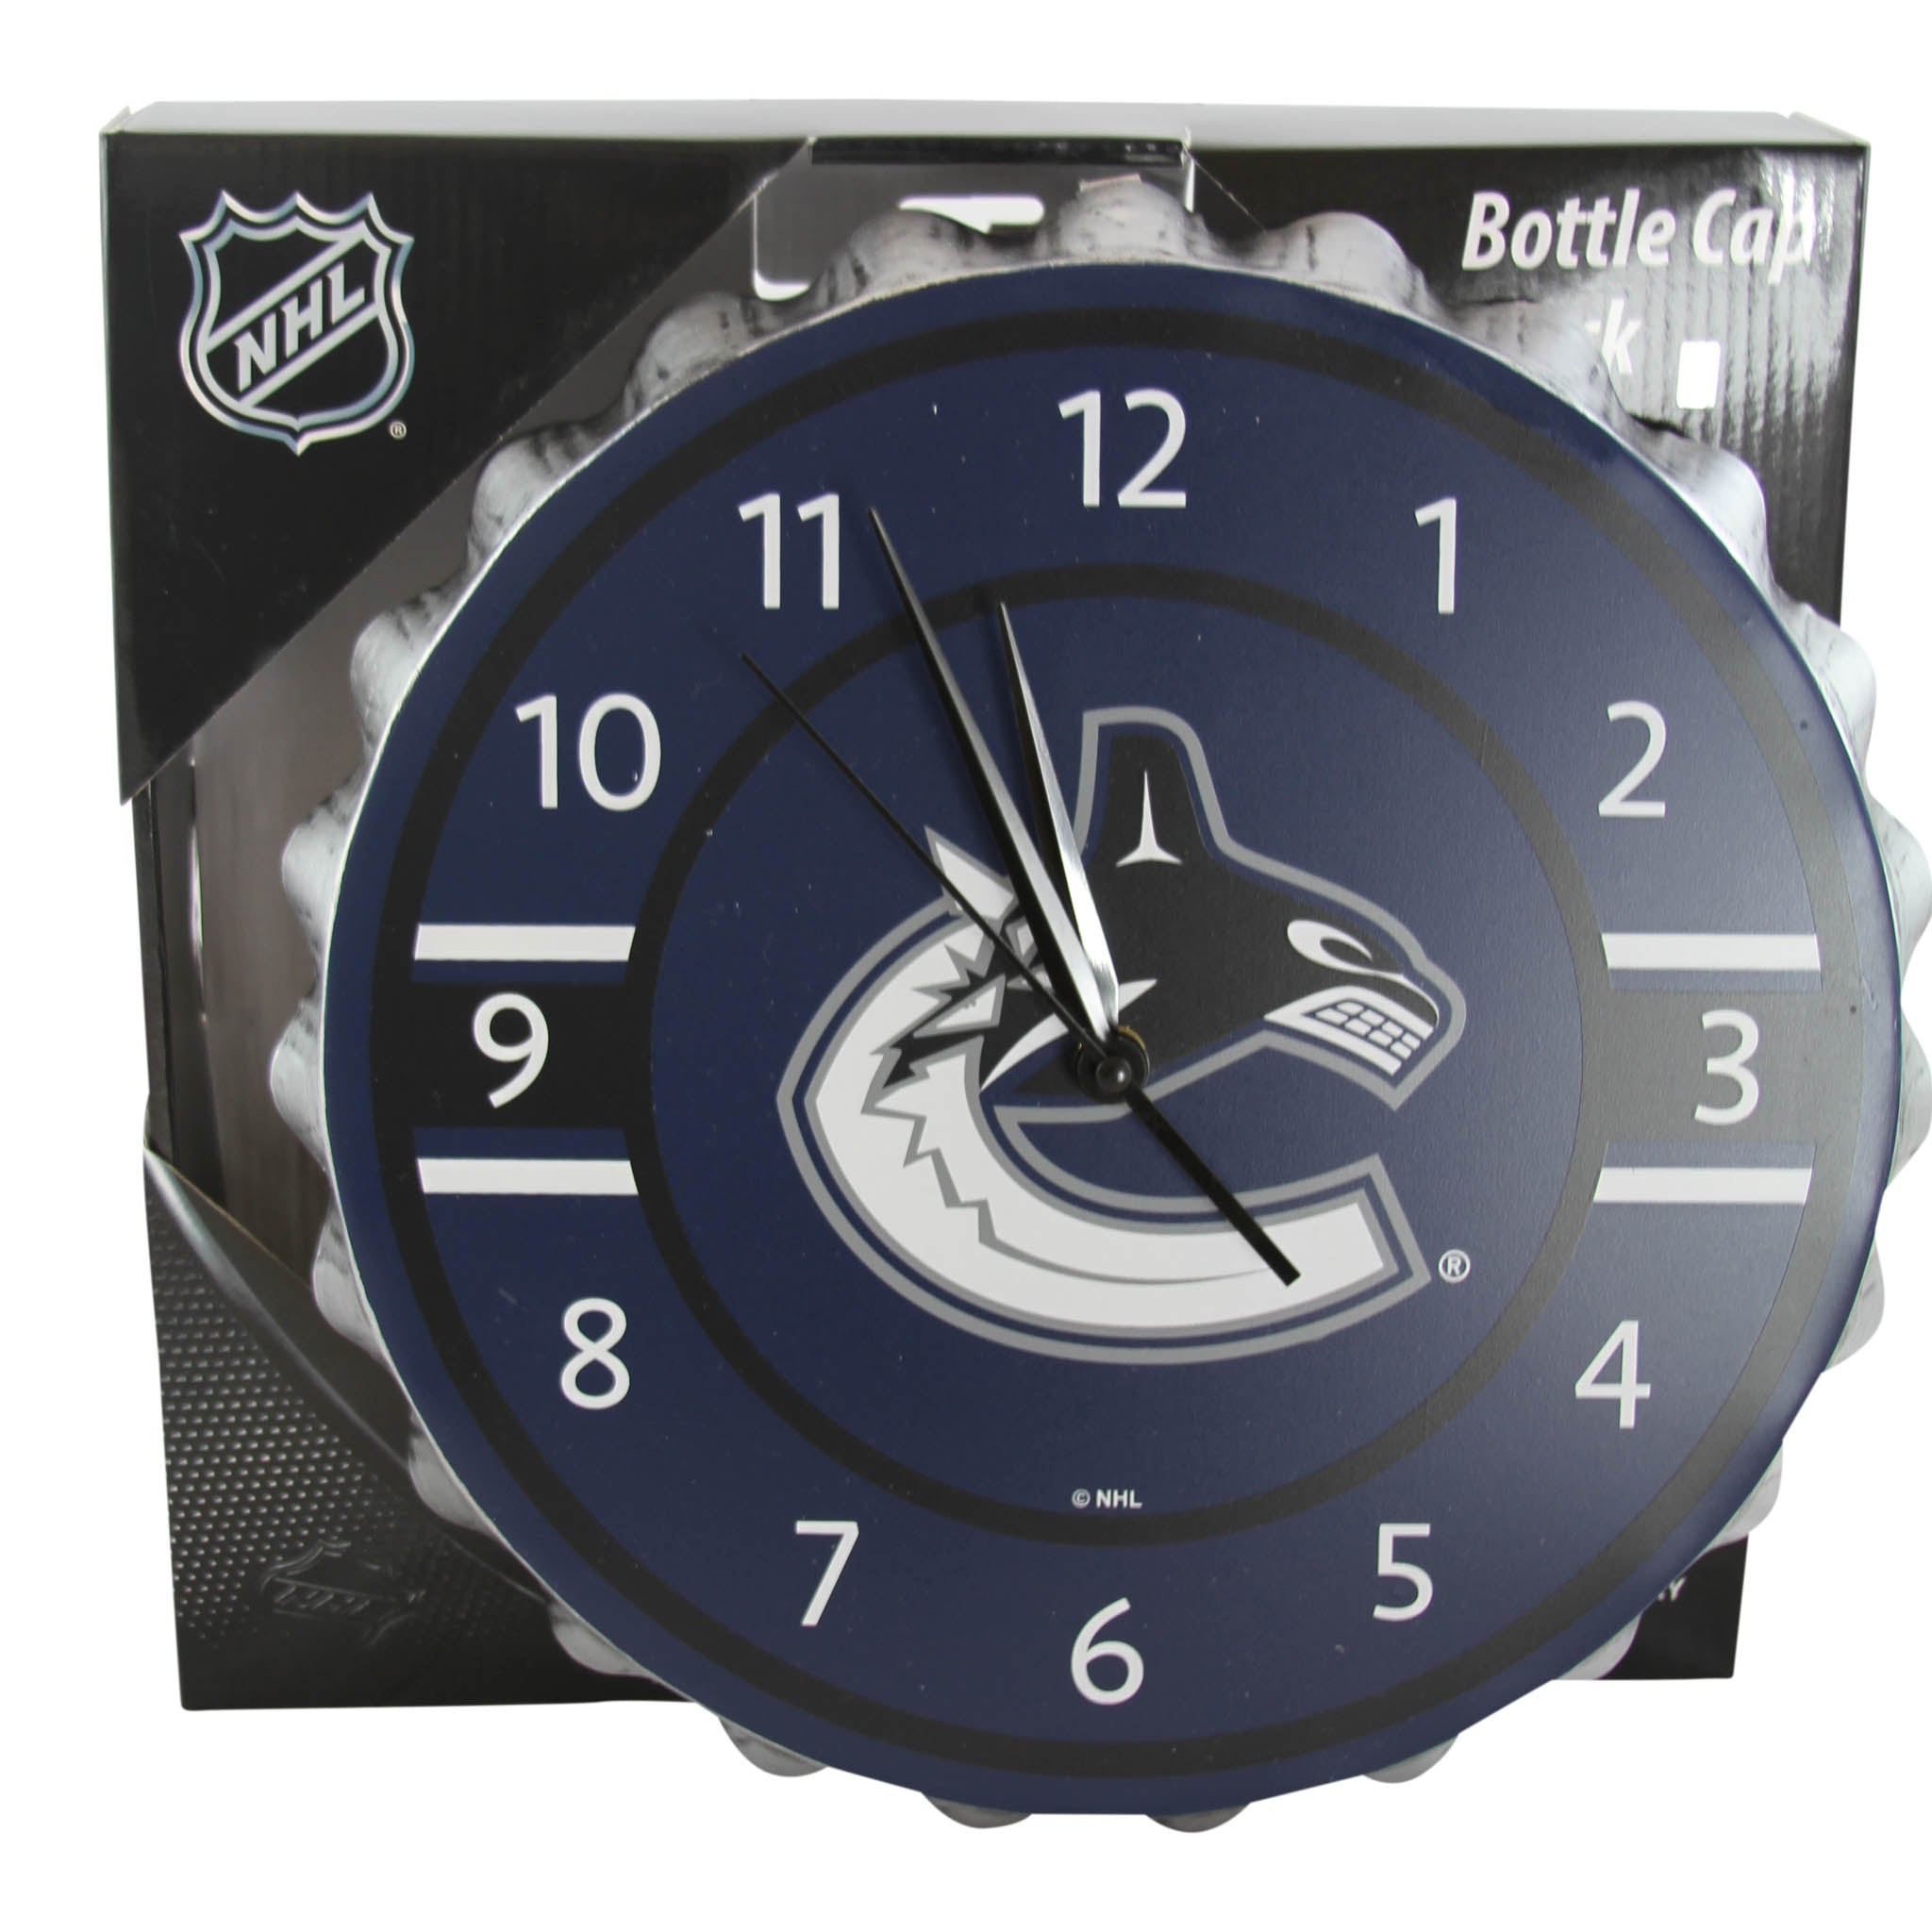 Vancouver Canucks Bottlecap Clock  dabf9ddcc